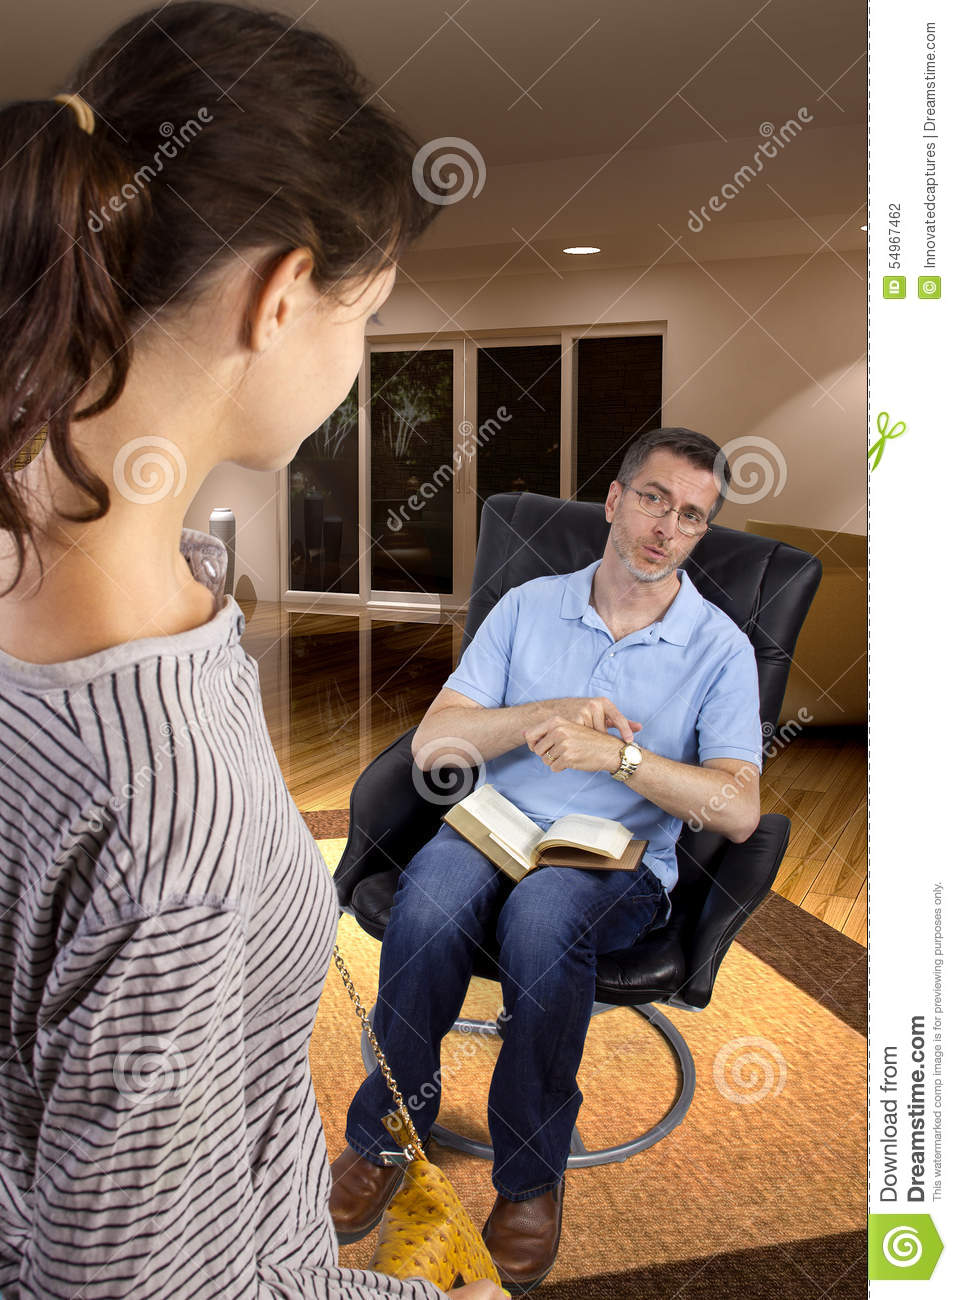 Waiting For Daughter Past Curfew Stock Photo Image Of